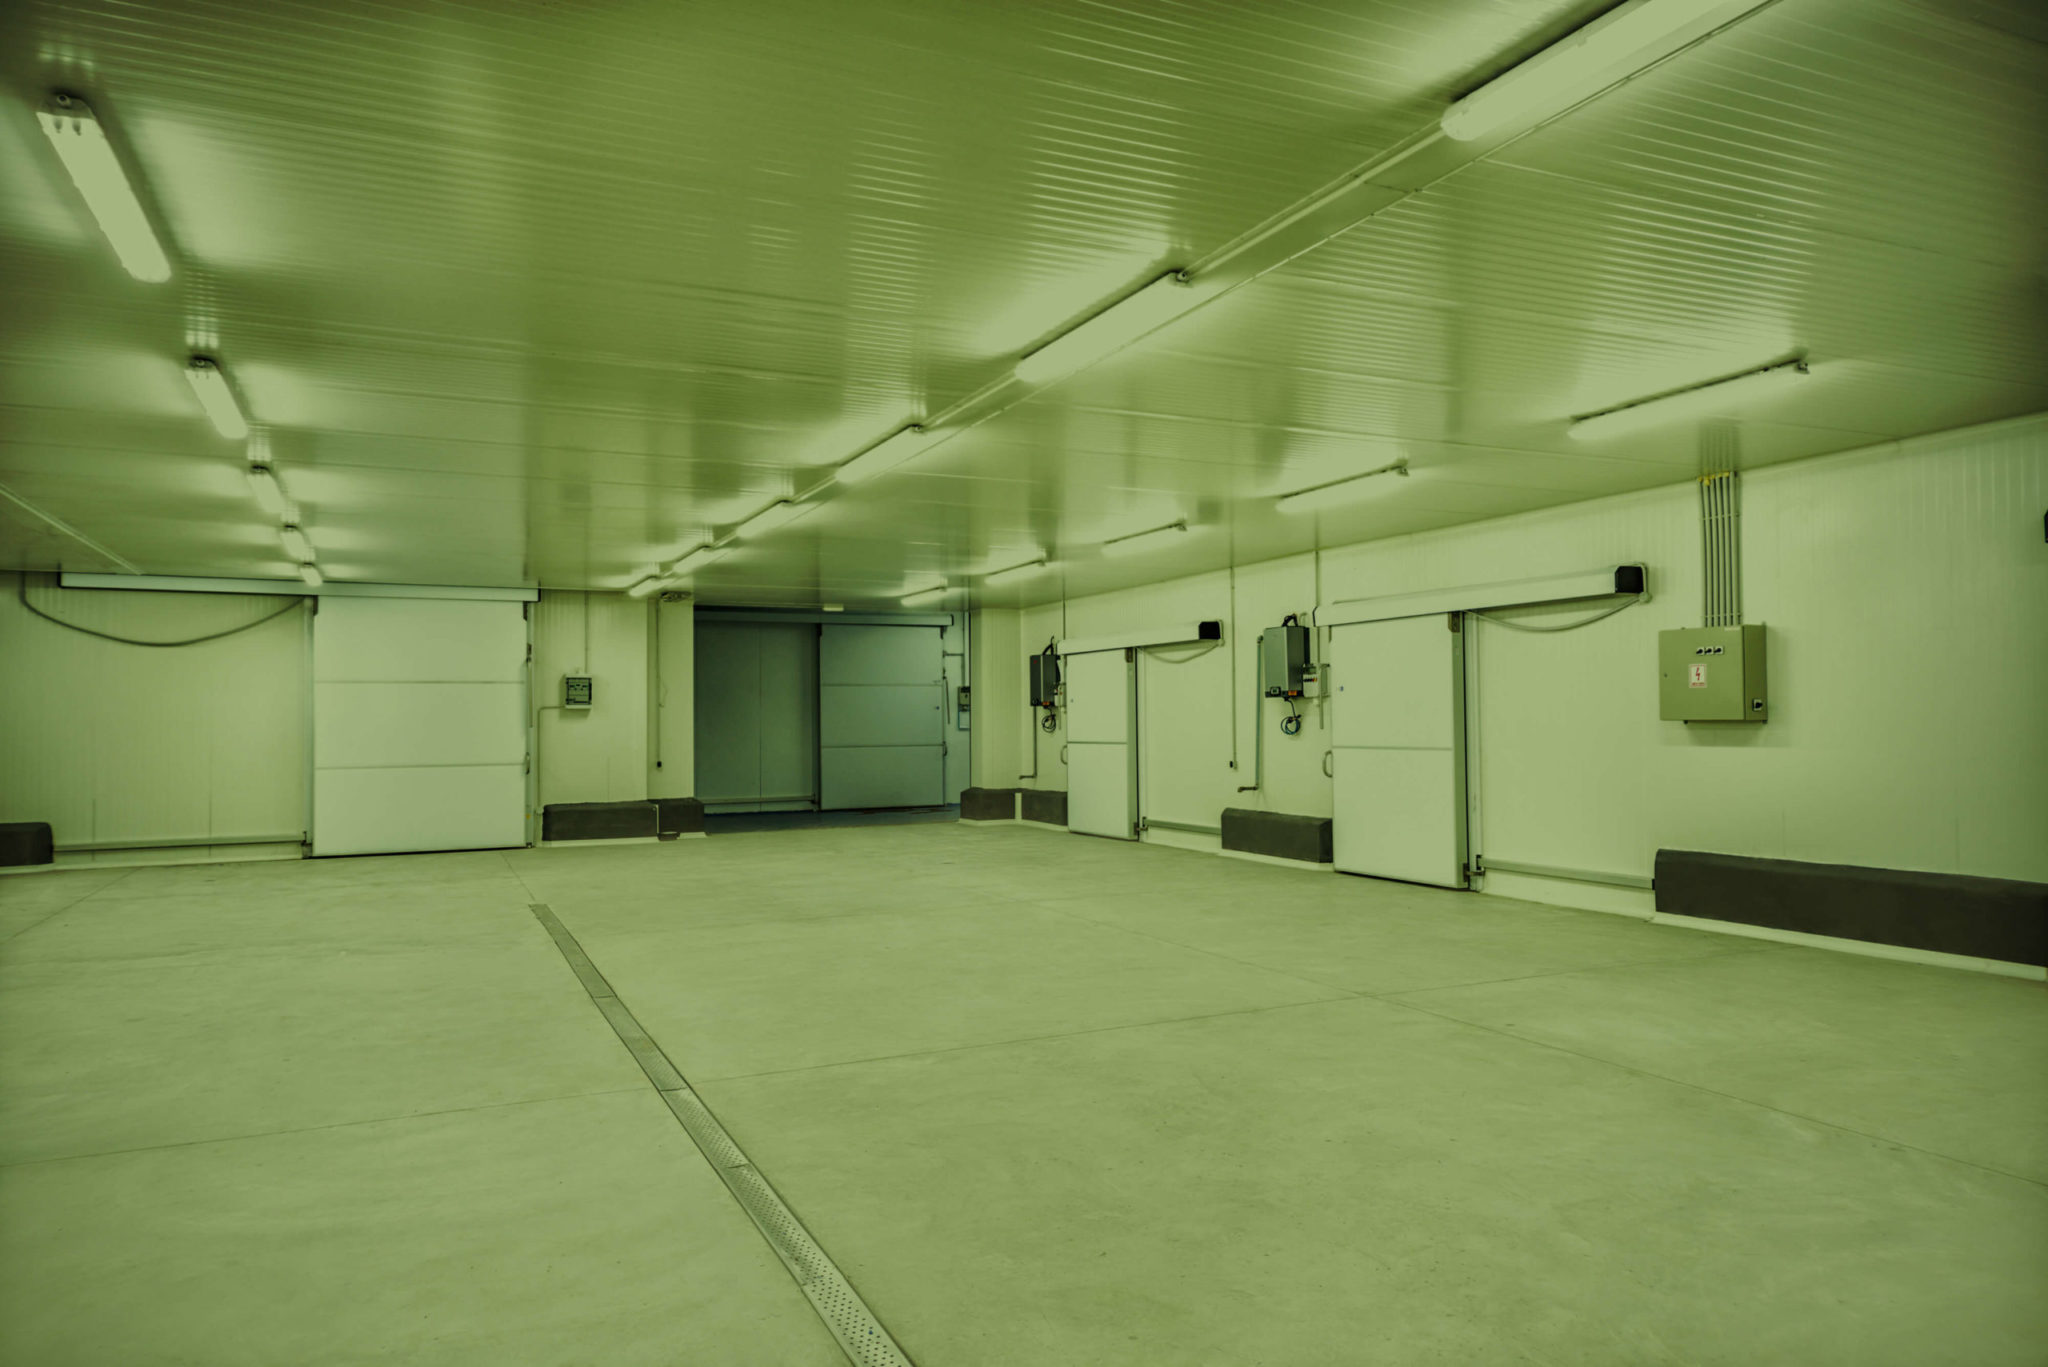 Interior cold storage facility